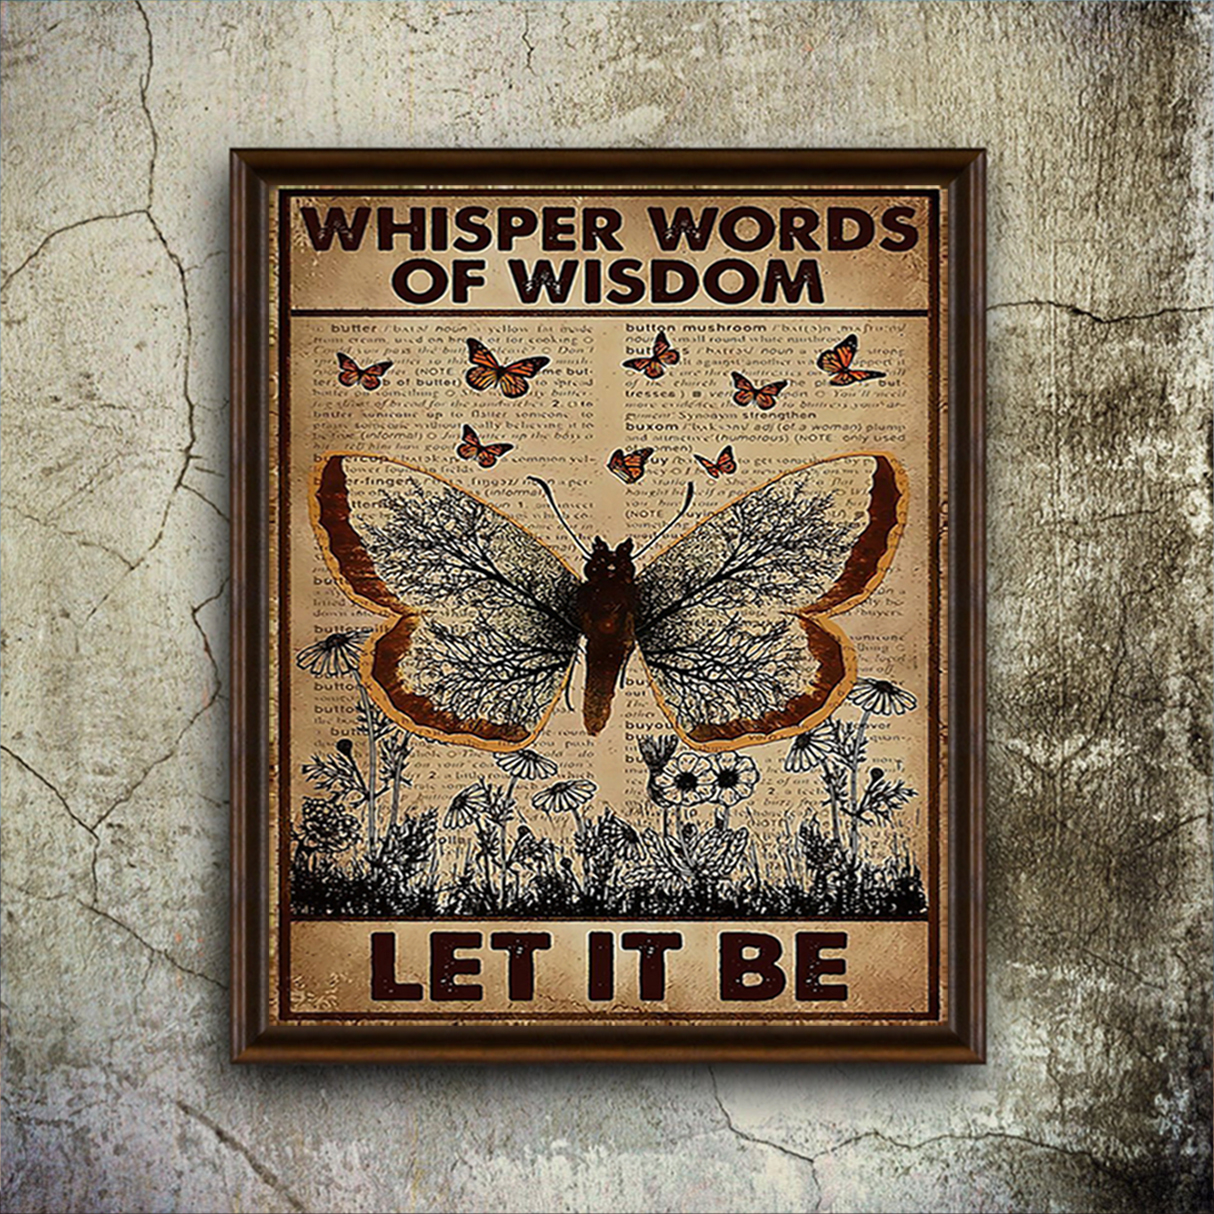 Butterfly whisper words of wisdom let it be poster A2